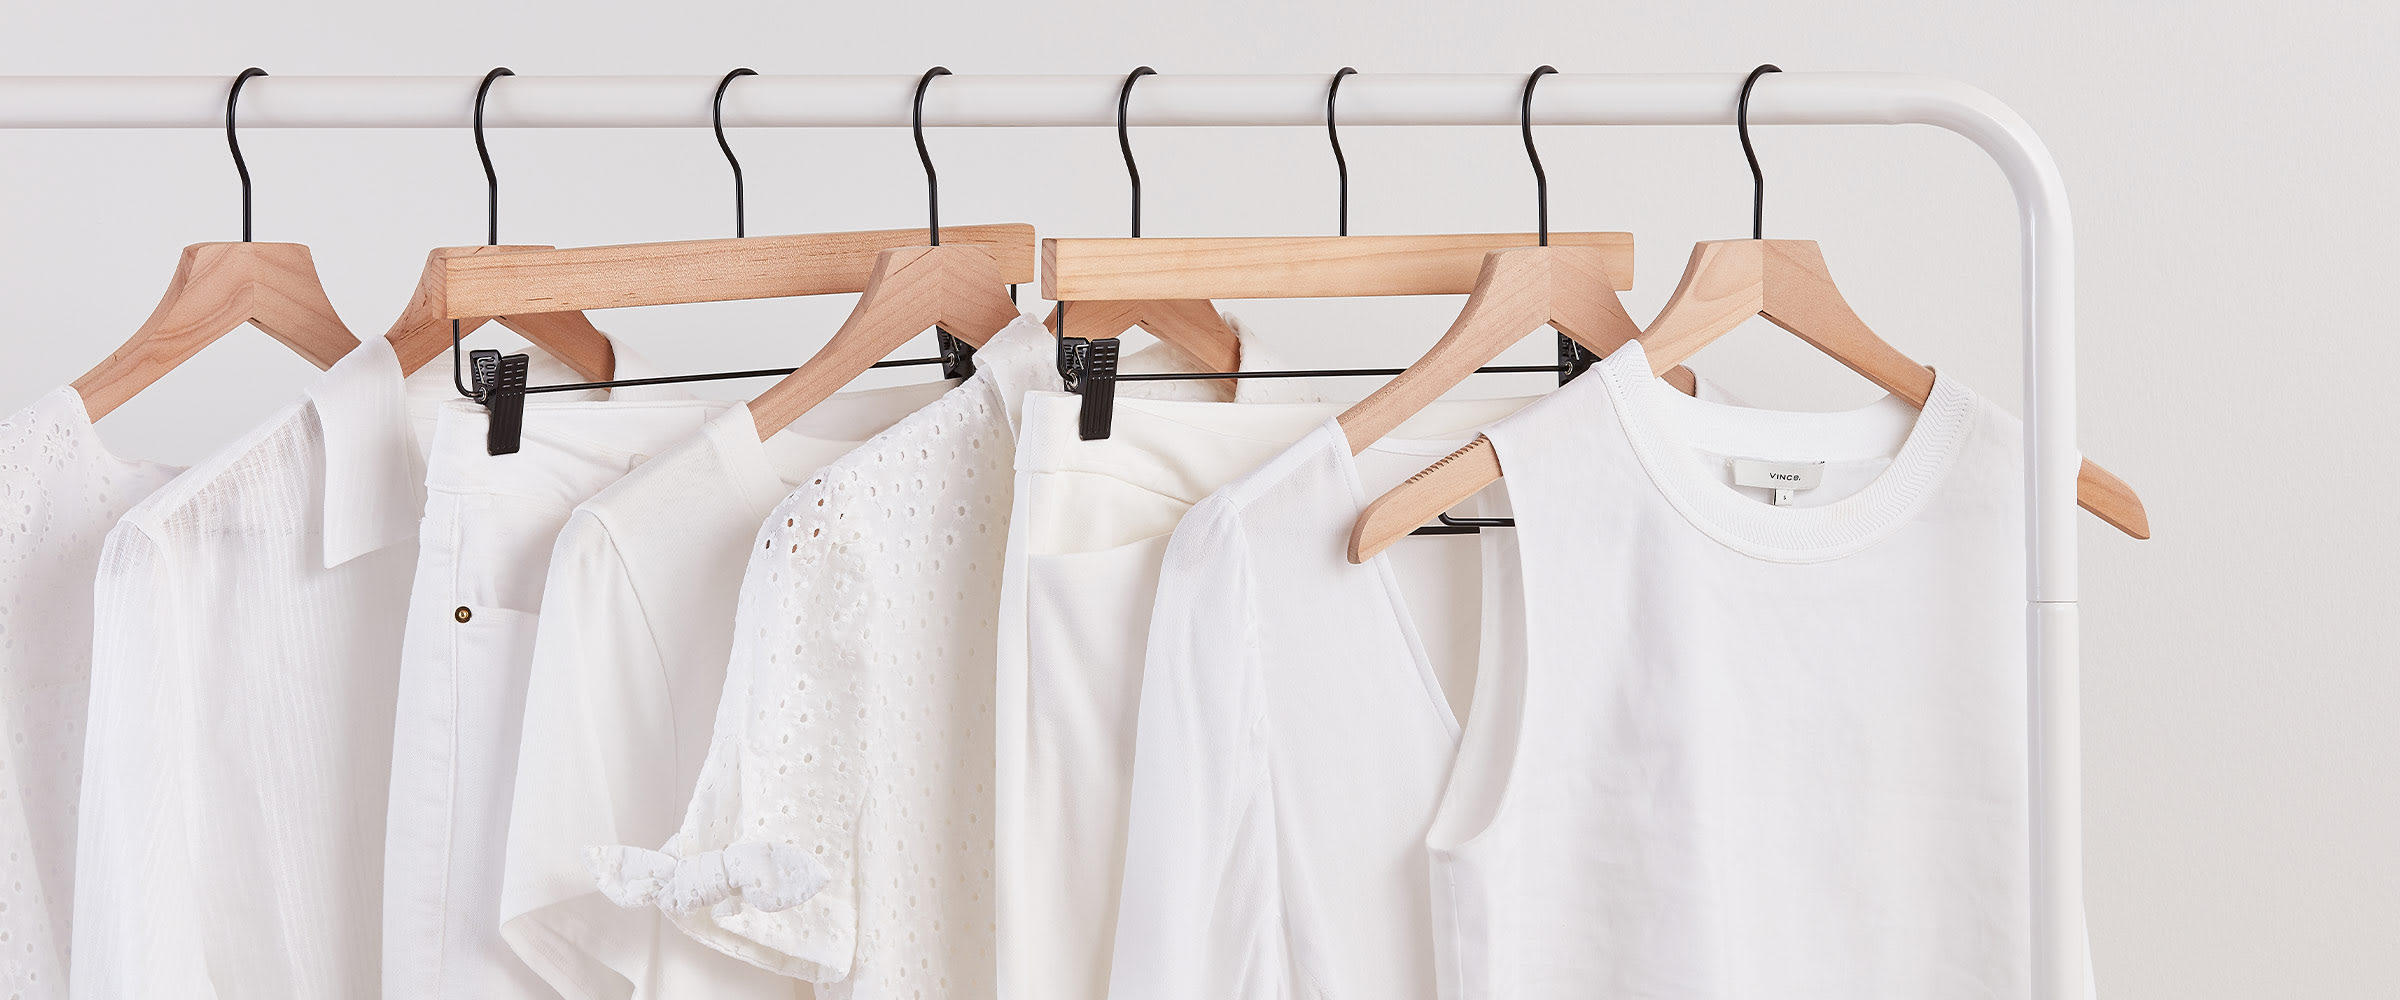 Hanging white clothes on clothing rack